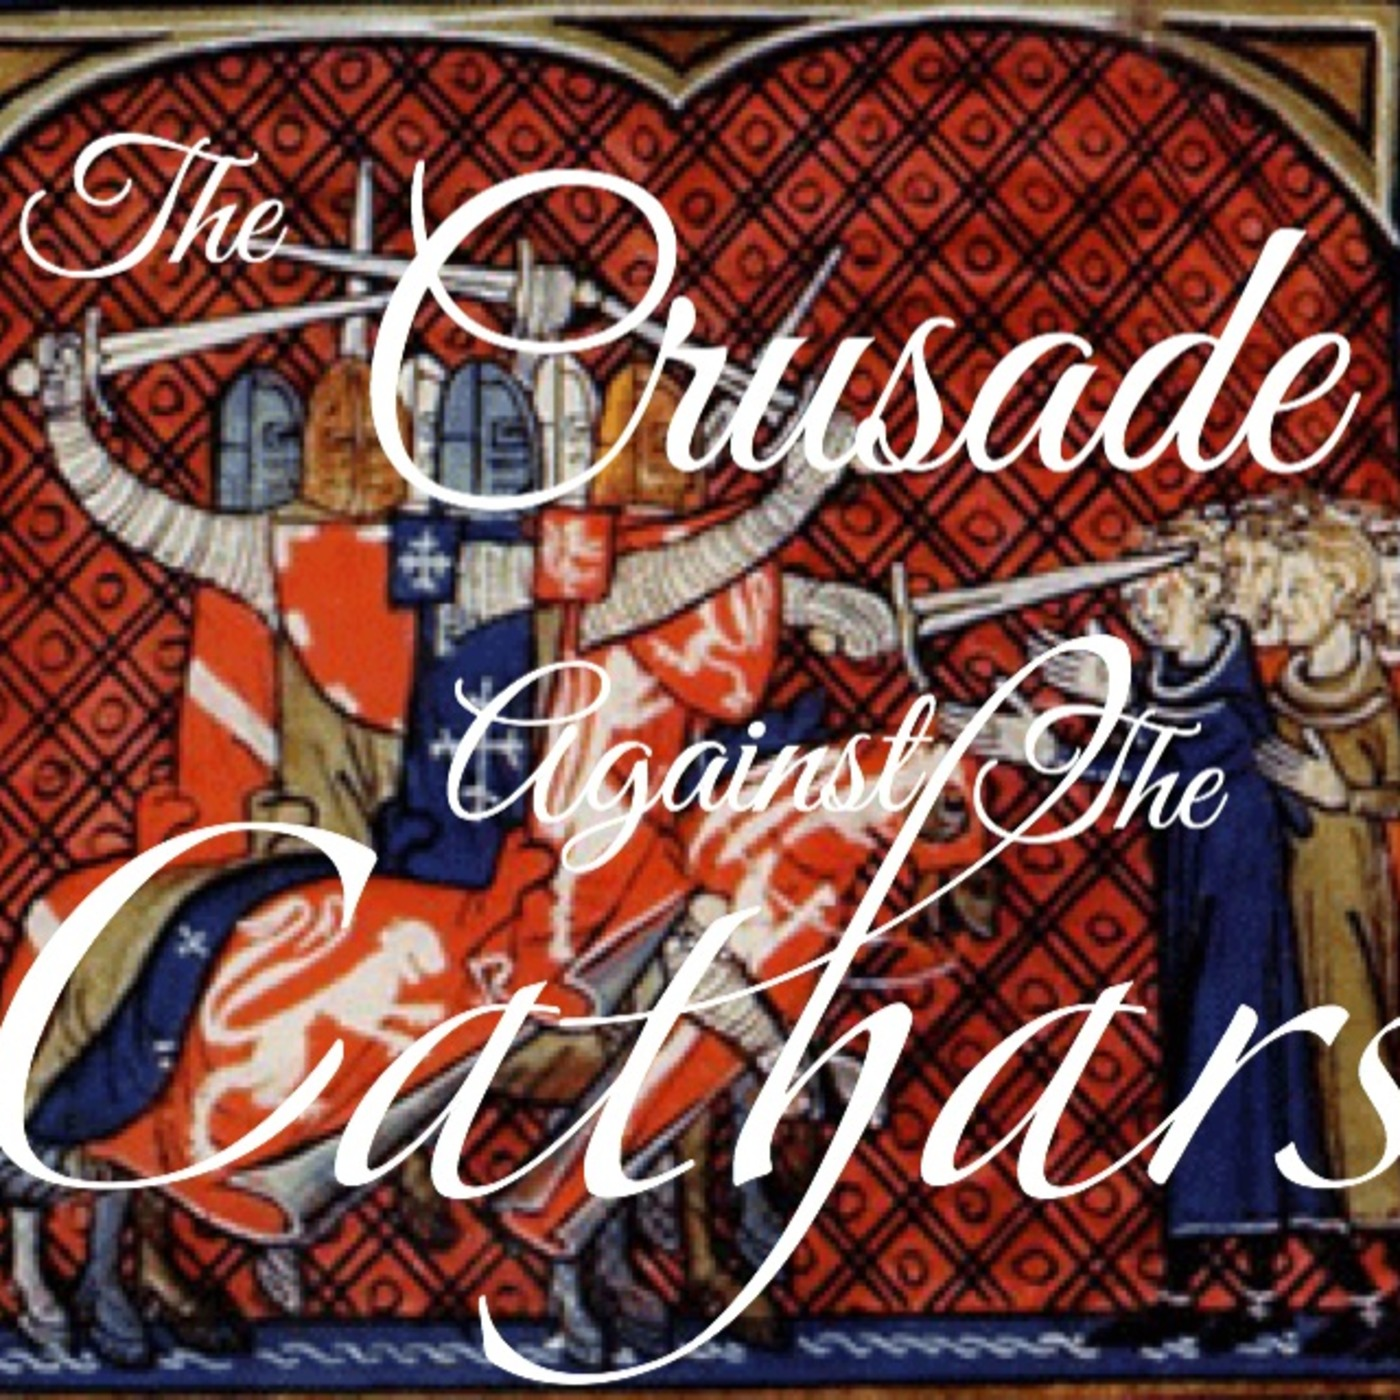 Episode 128 - The Crusade against the Cathars